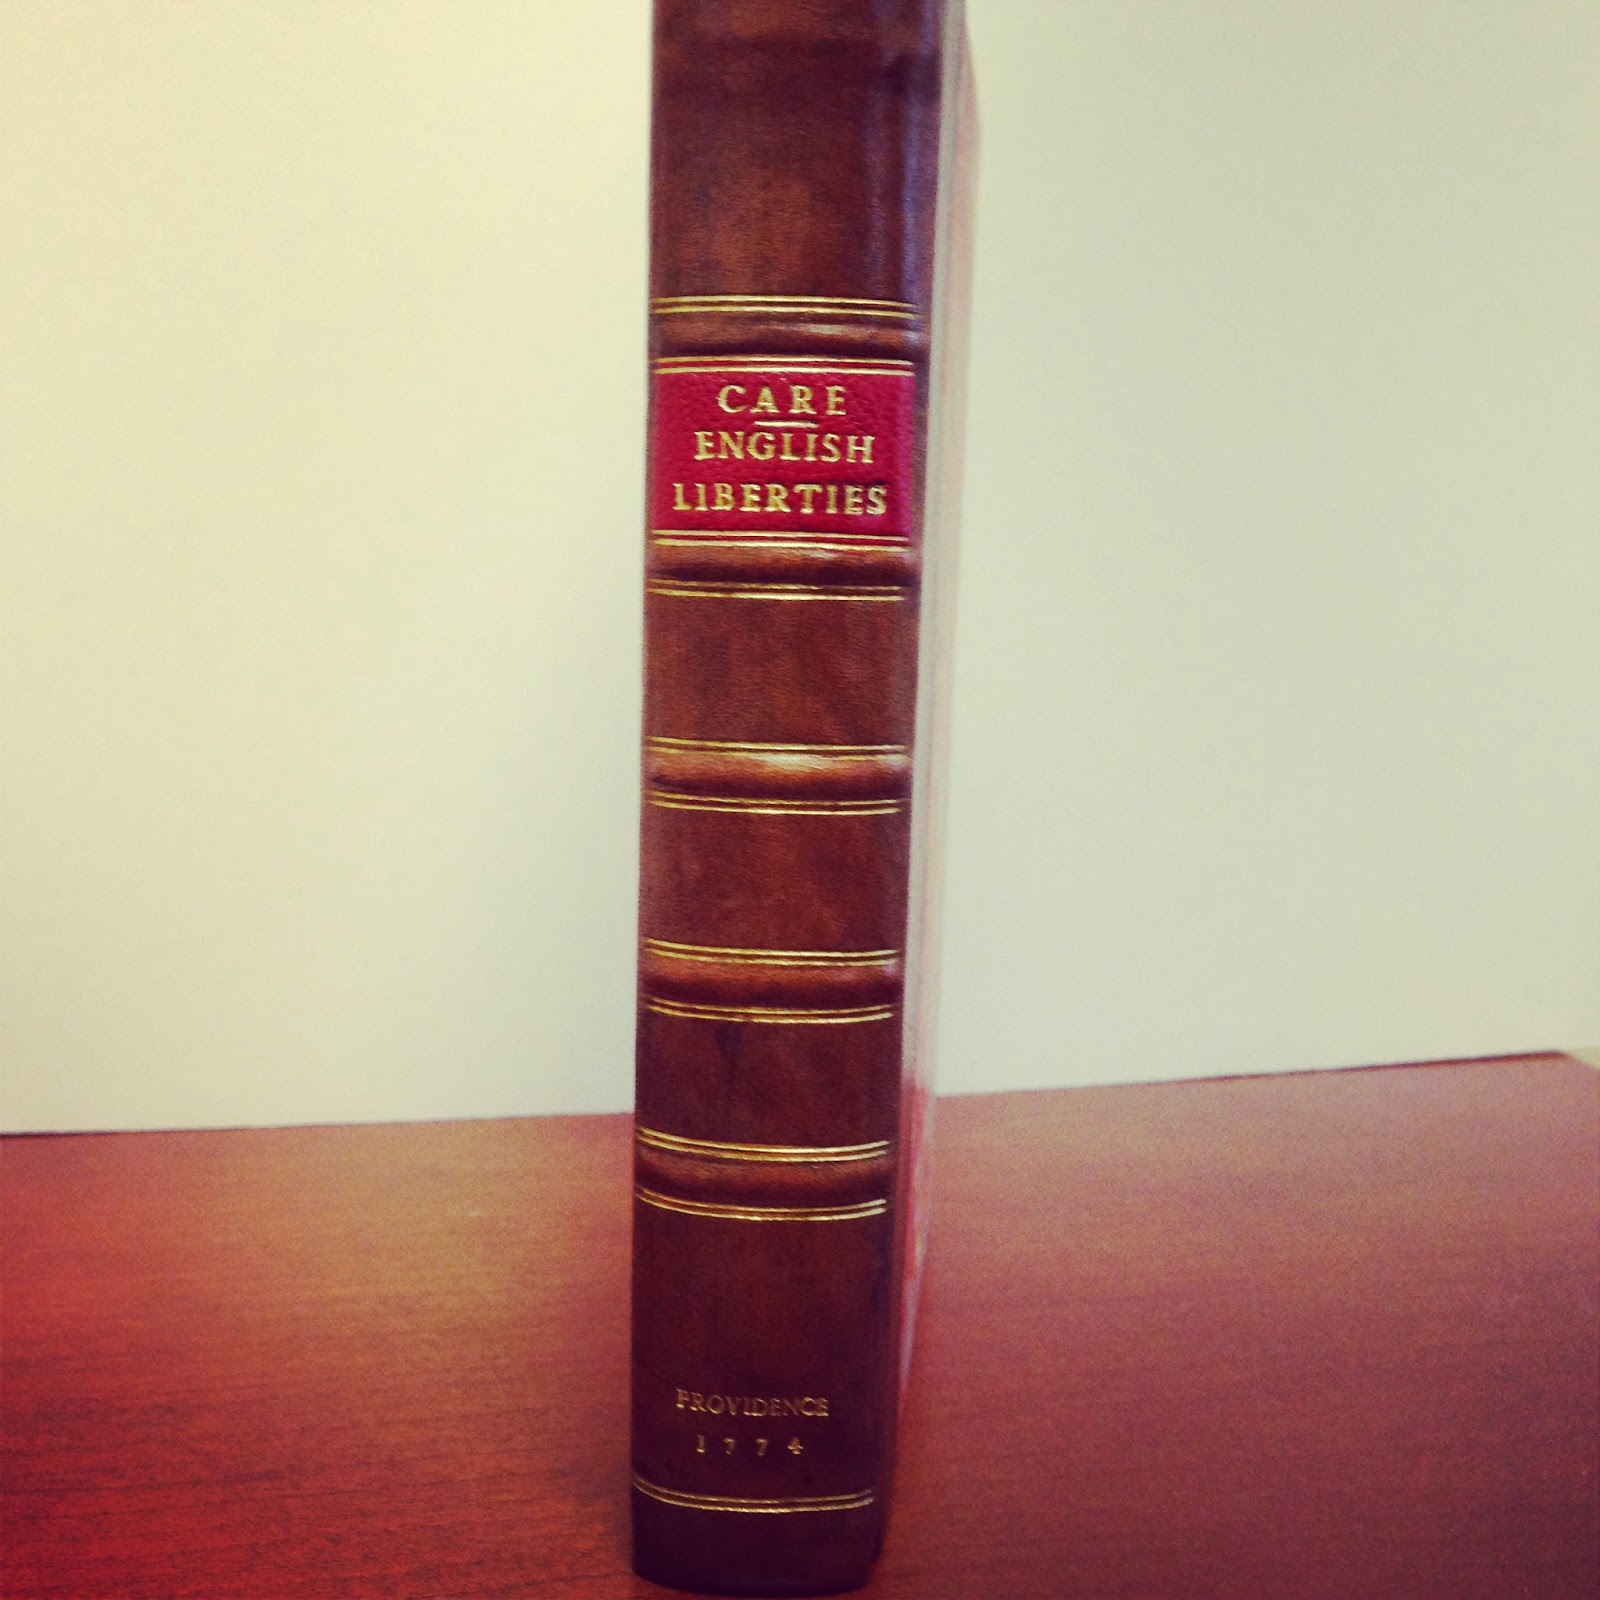 Spine of Henry Care's English Liberties